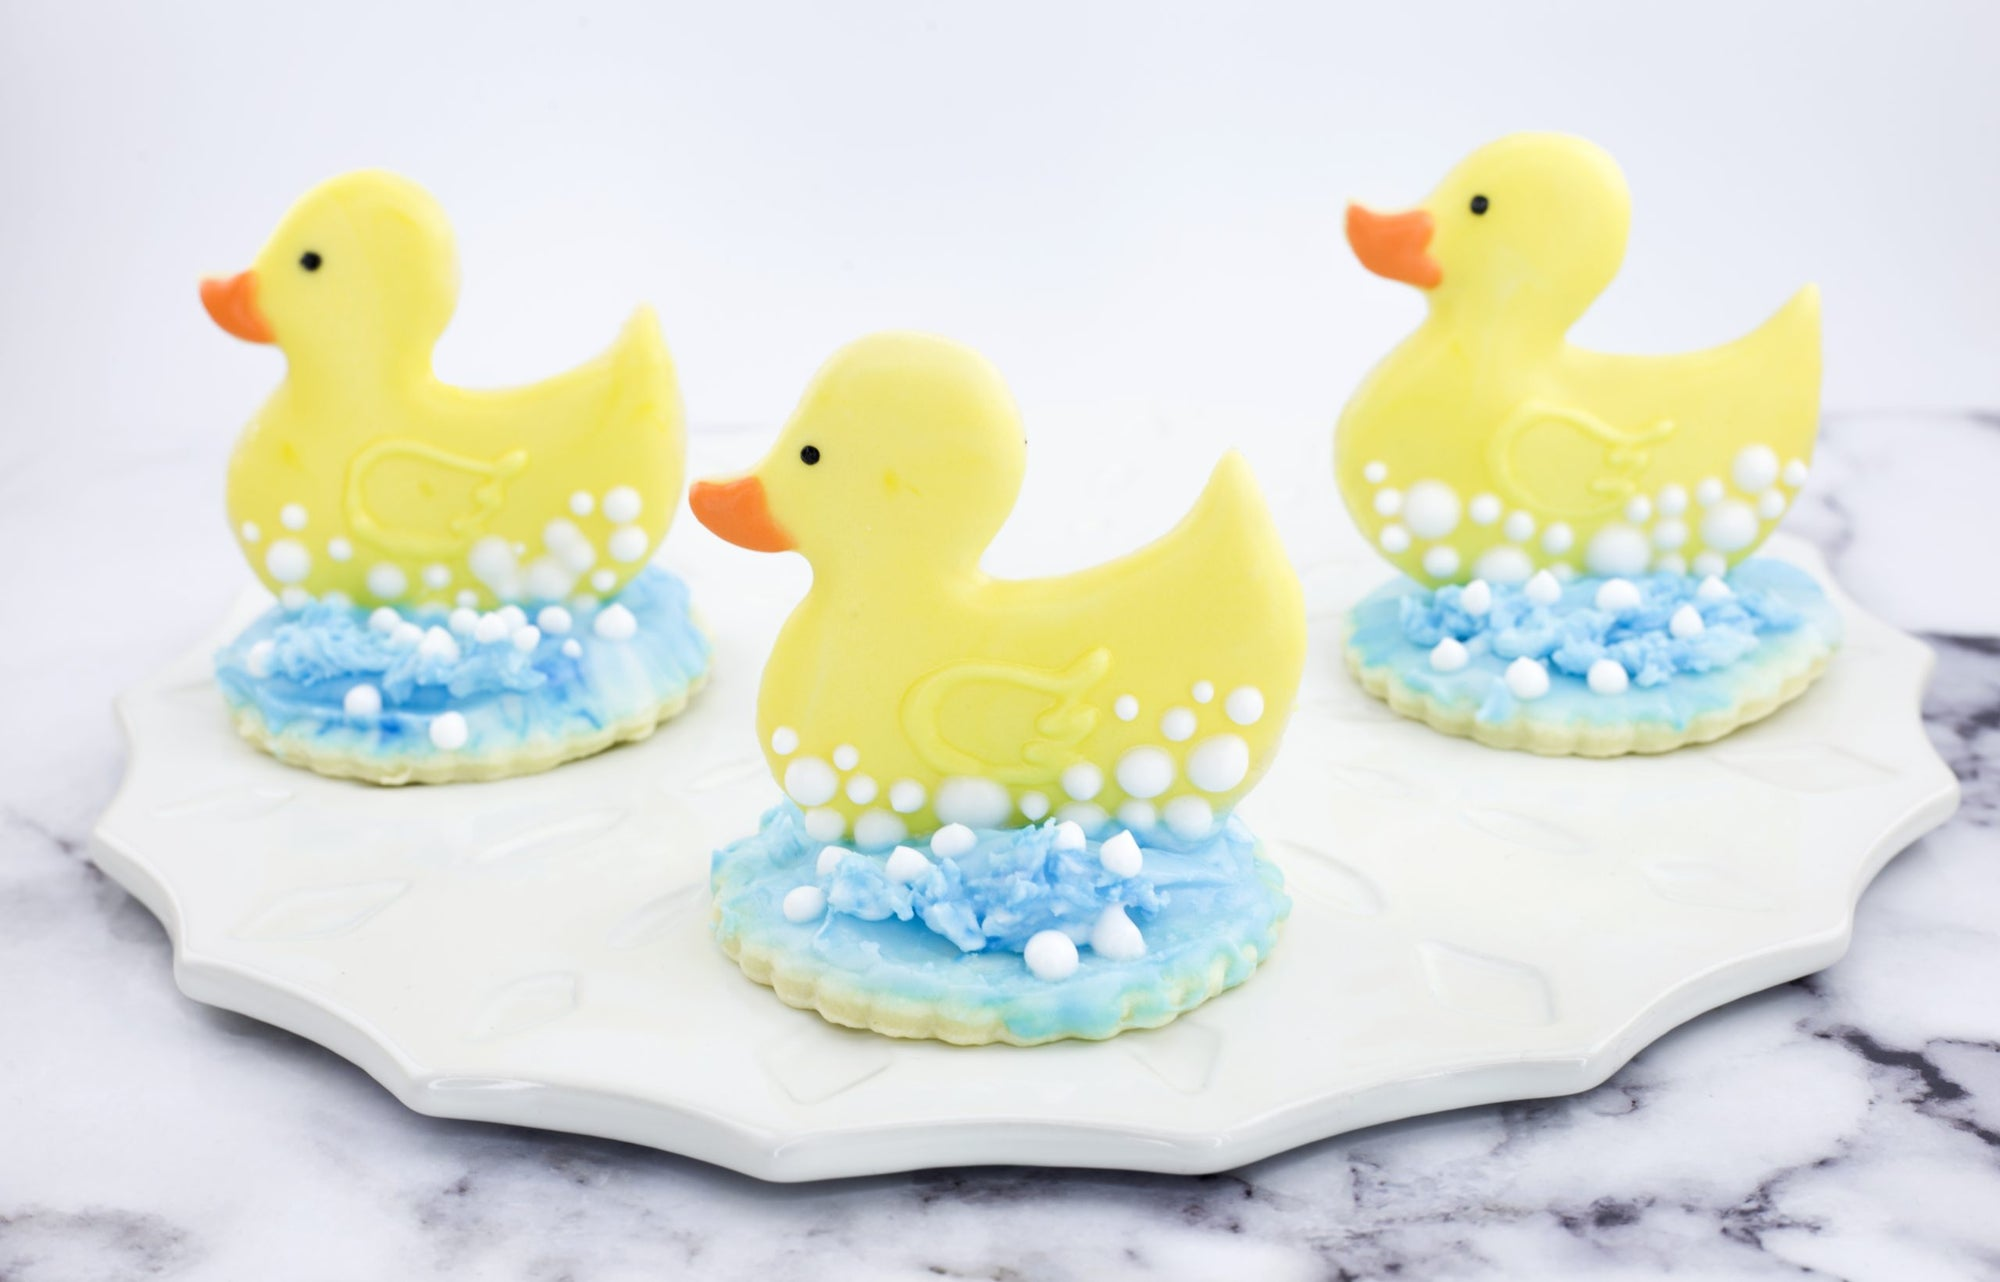 Duck Rubber Ducky Cookie Cutter - Dolce3D